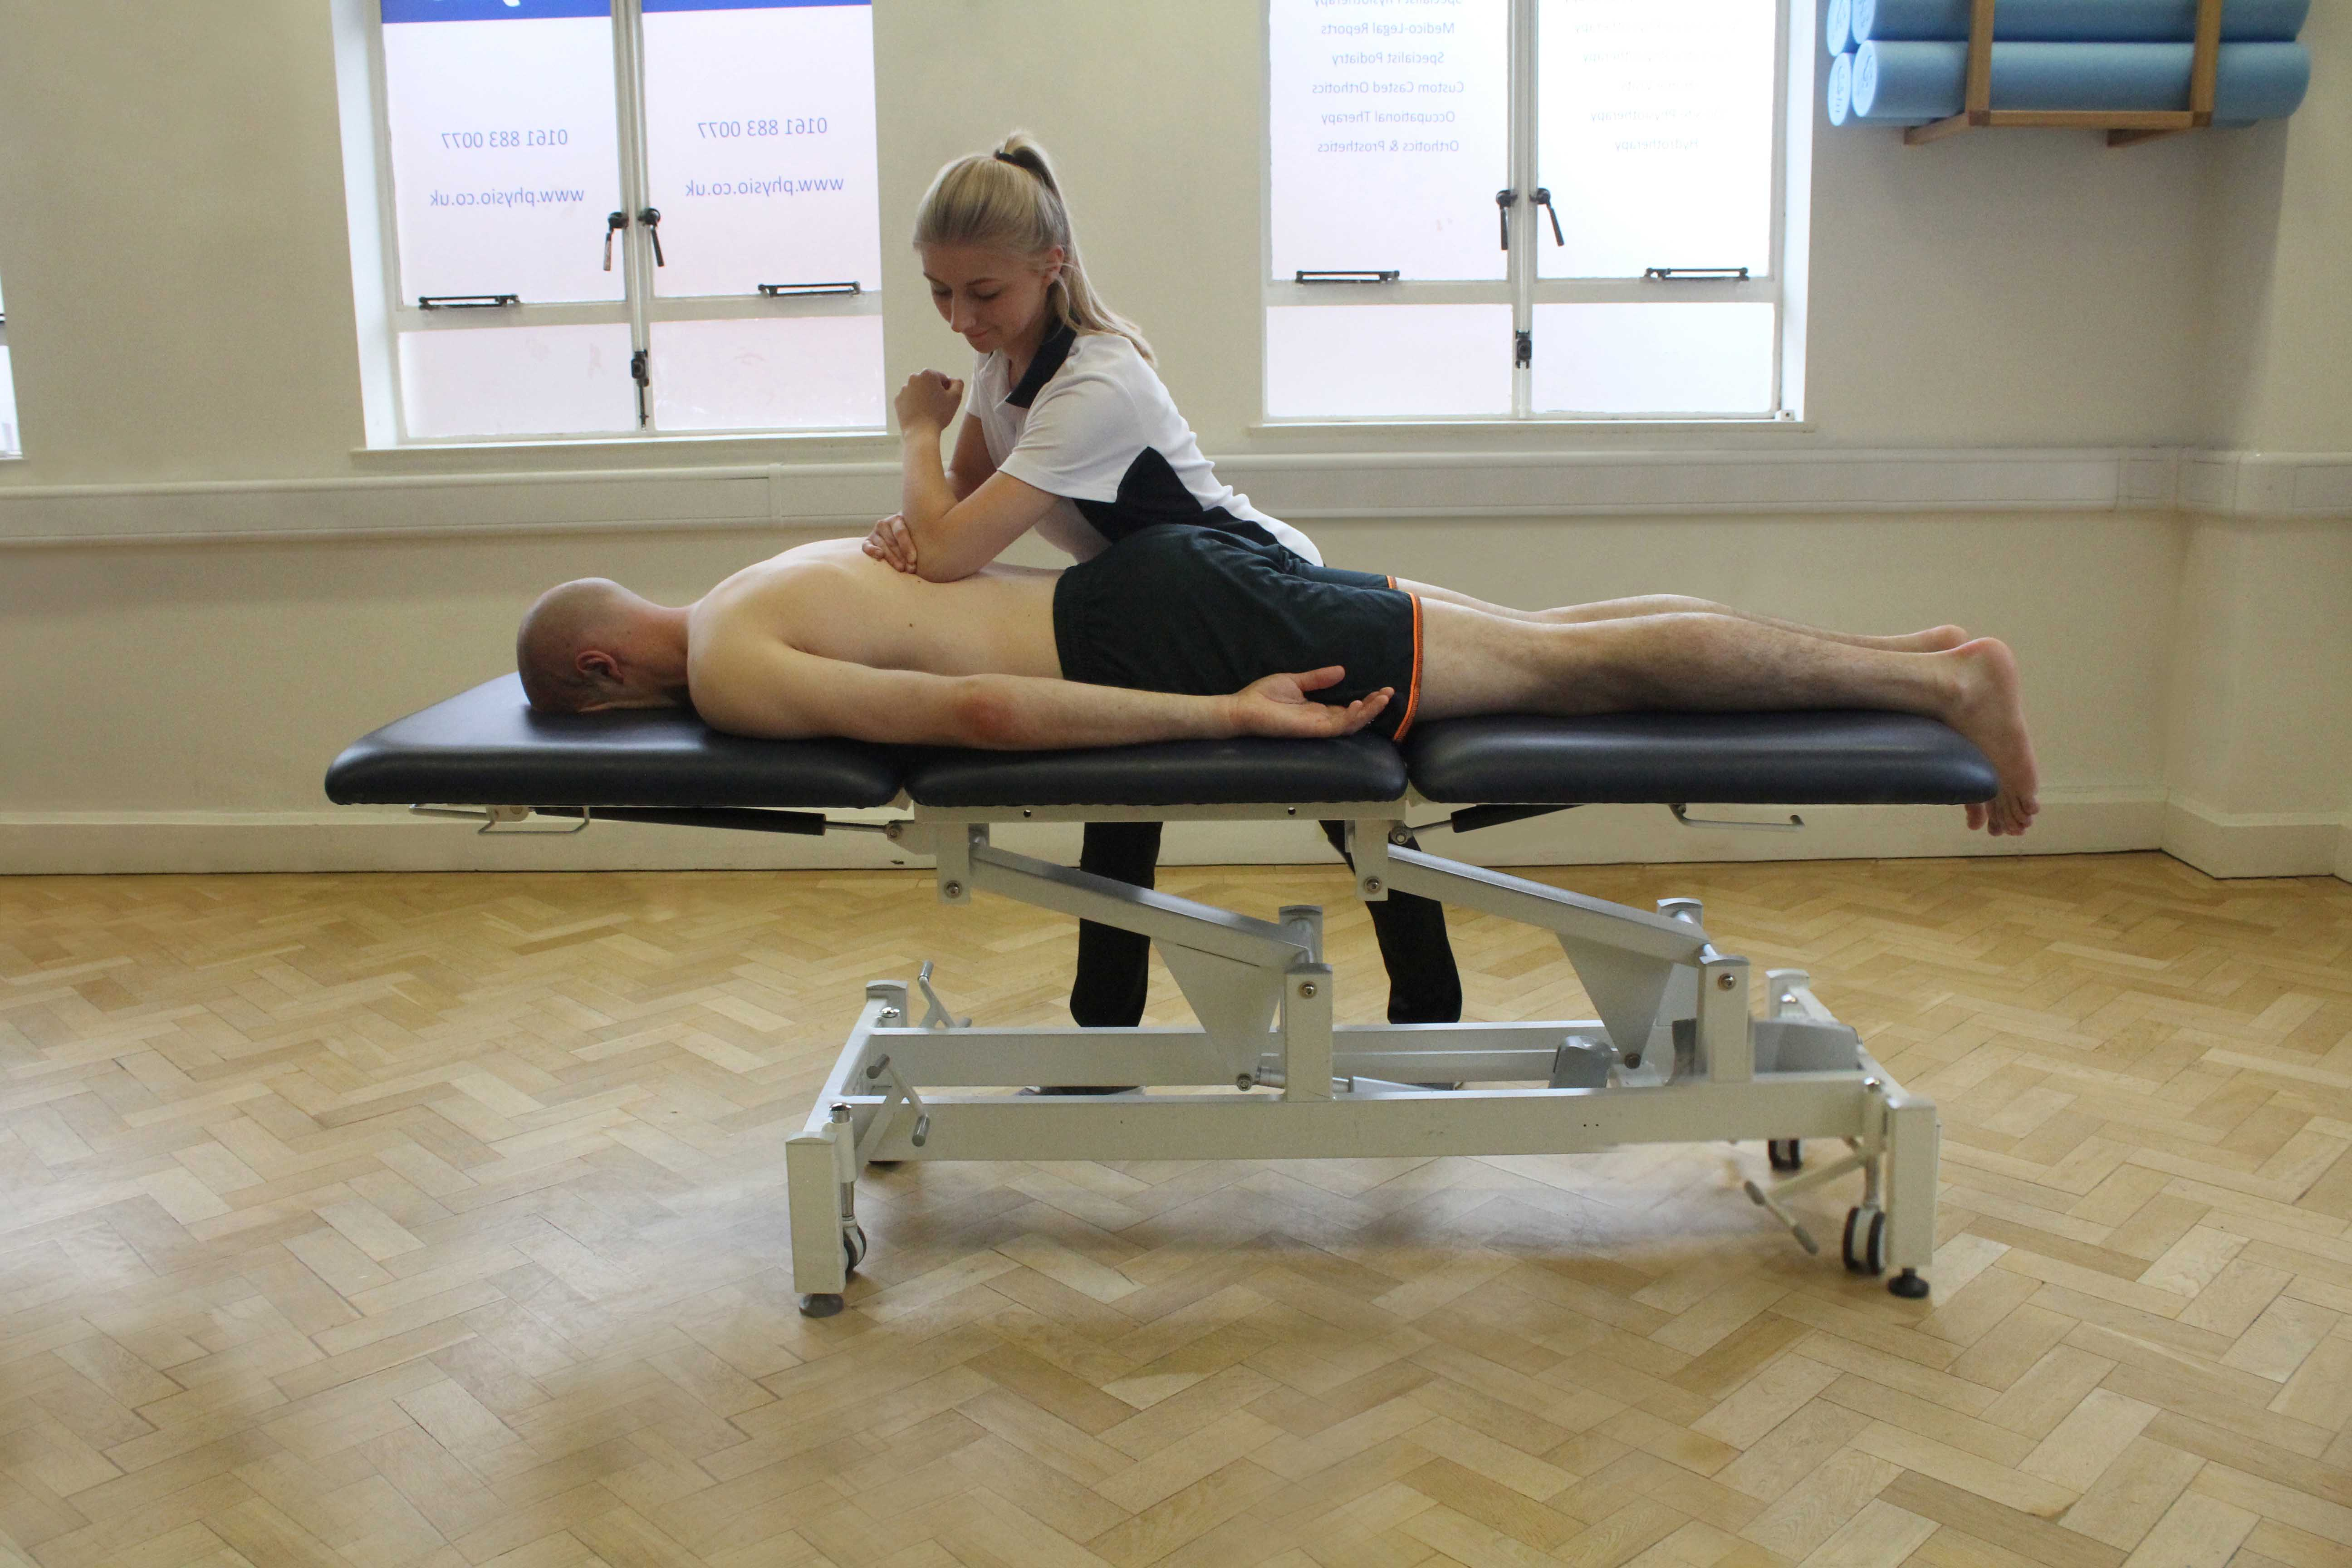 Soft Tissue Massage targeting latissimus dorsi muscle